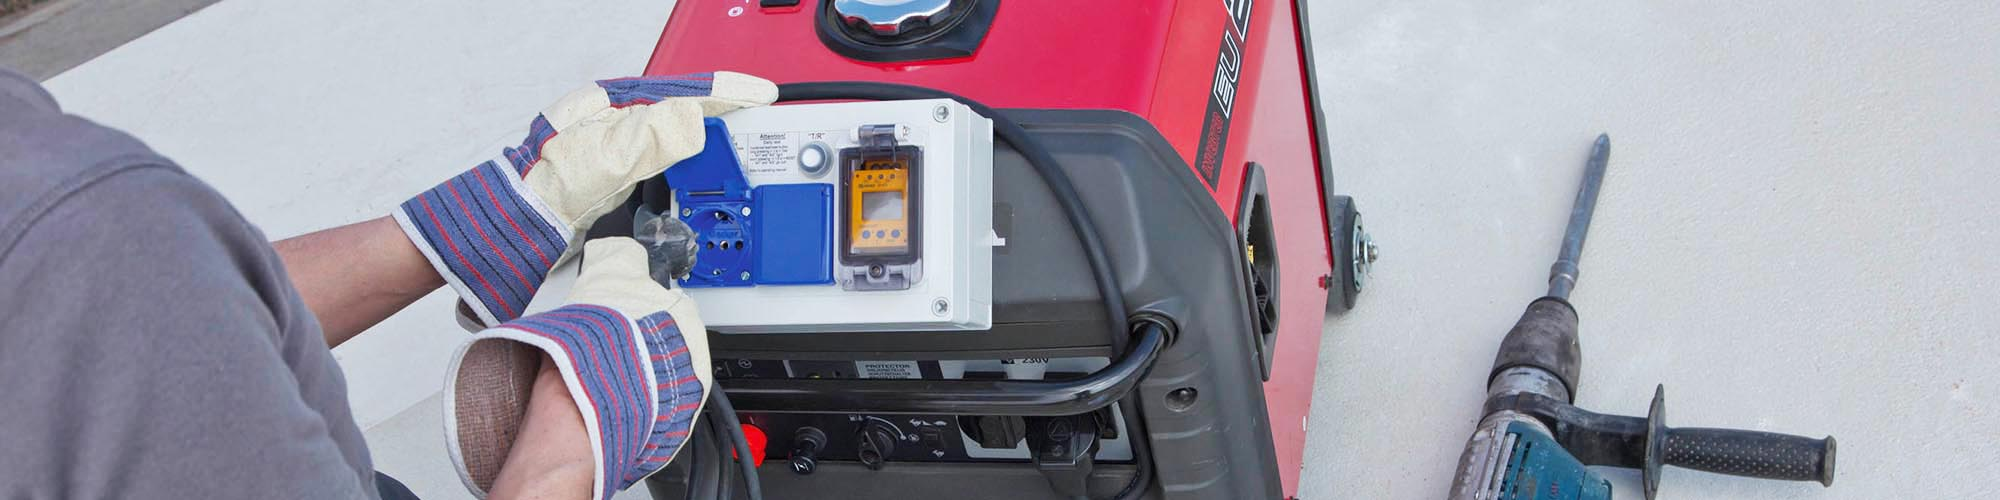 Using mobile generators safely